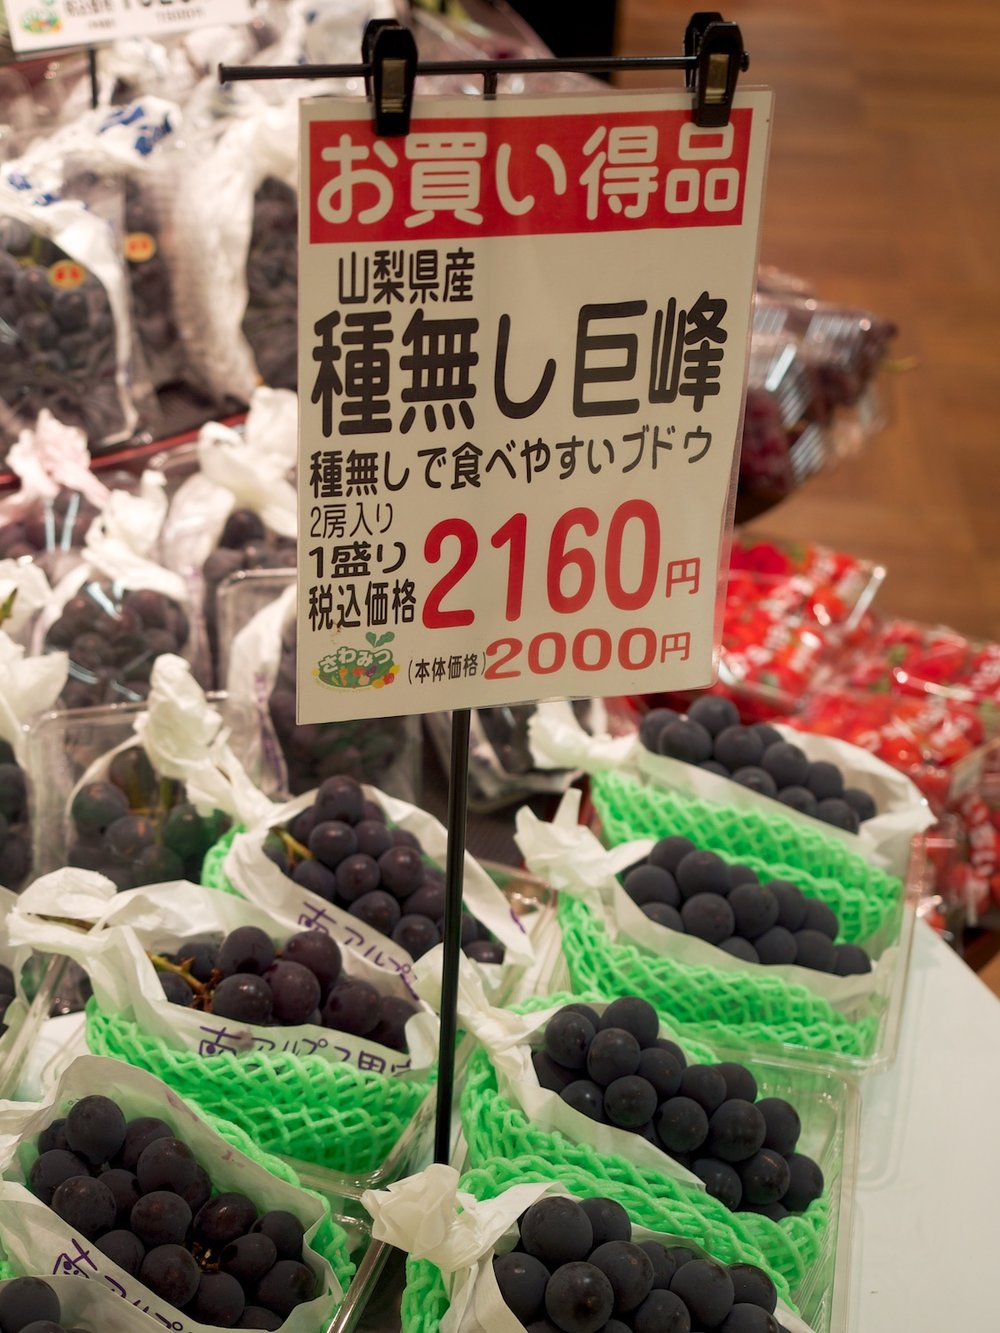 Incredibly expensive fruit is a gift, not a staple in Japan. Free samples were about all we got.